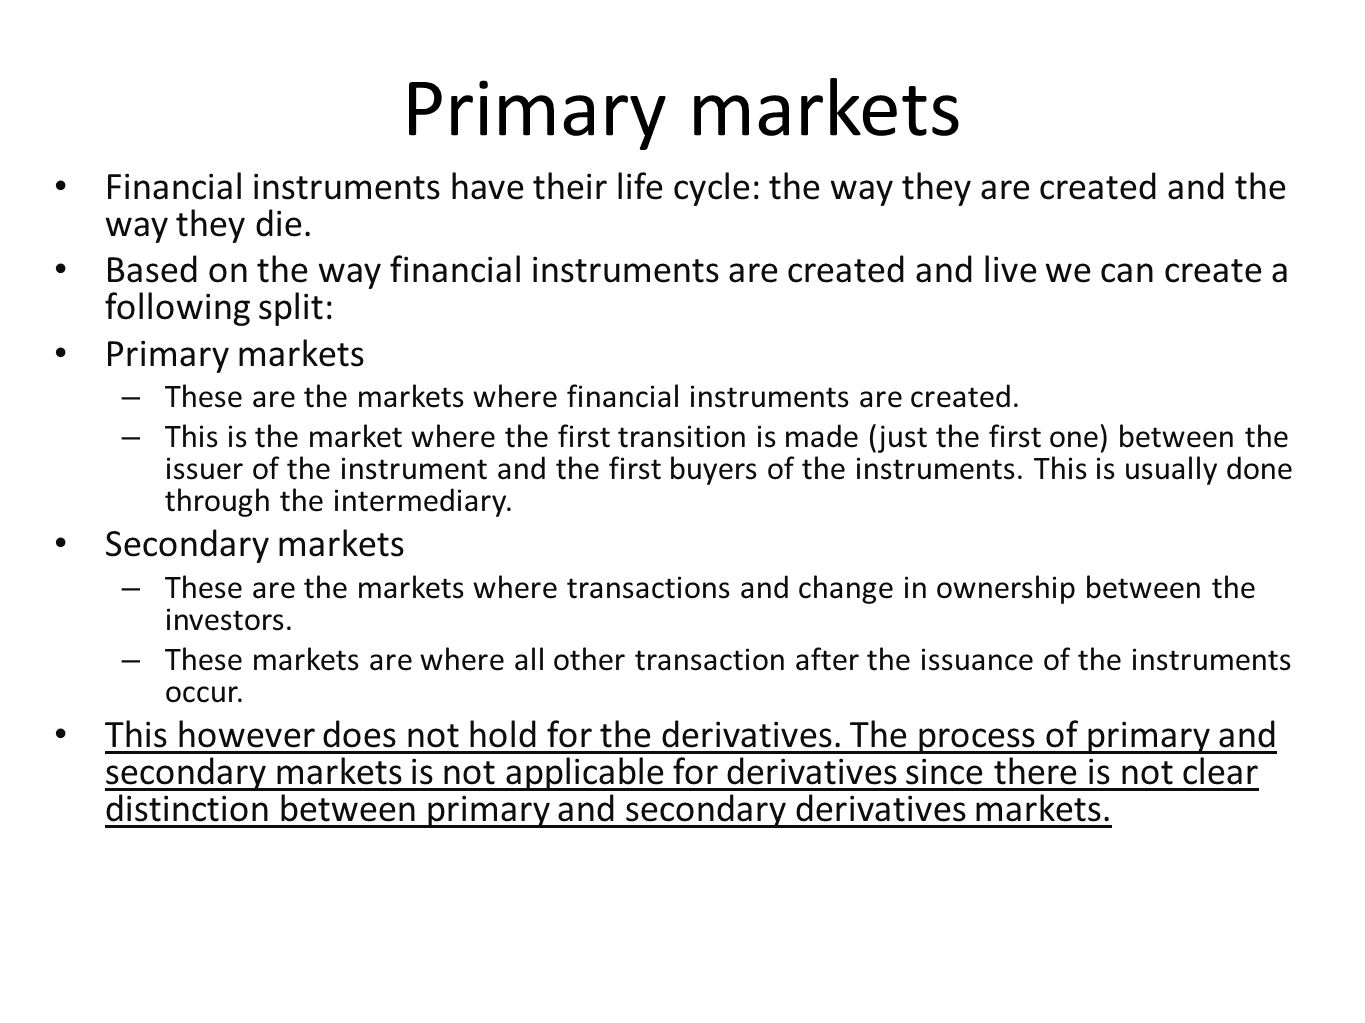 Primary markets Financial instruments have their life cycle: the way they are created and the way they die. Based on the way financial instruments are